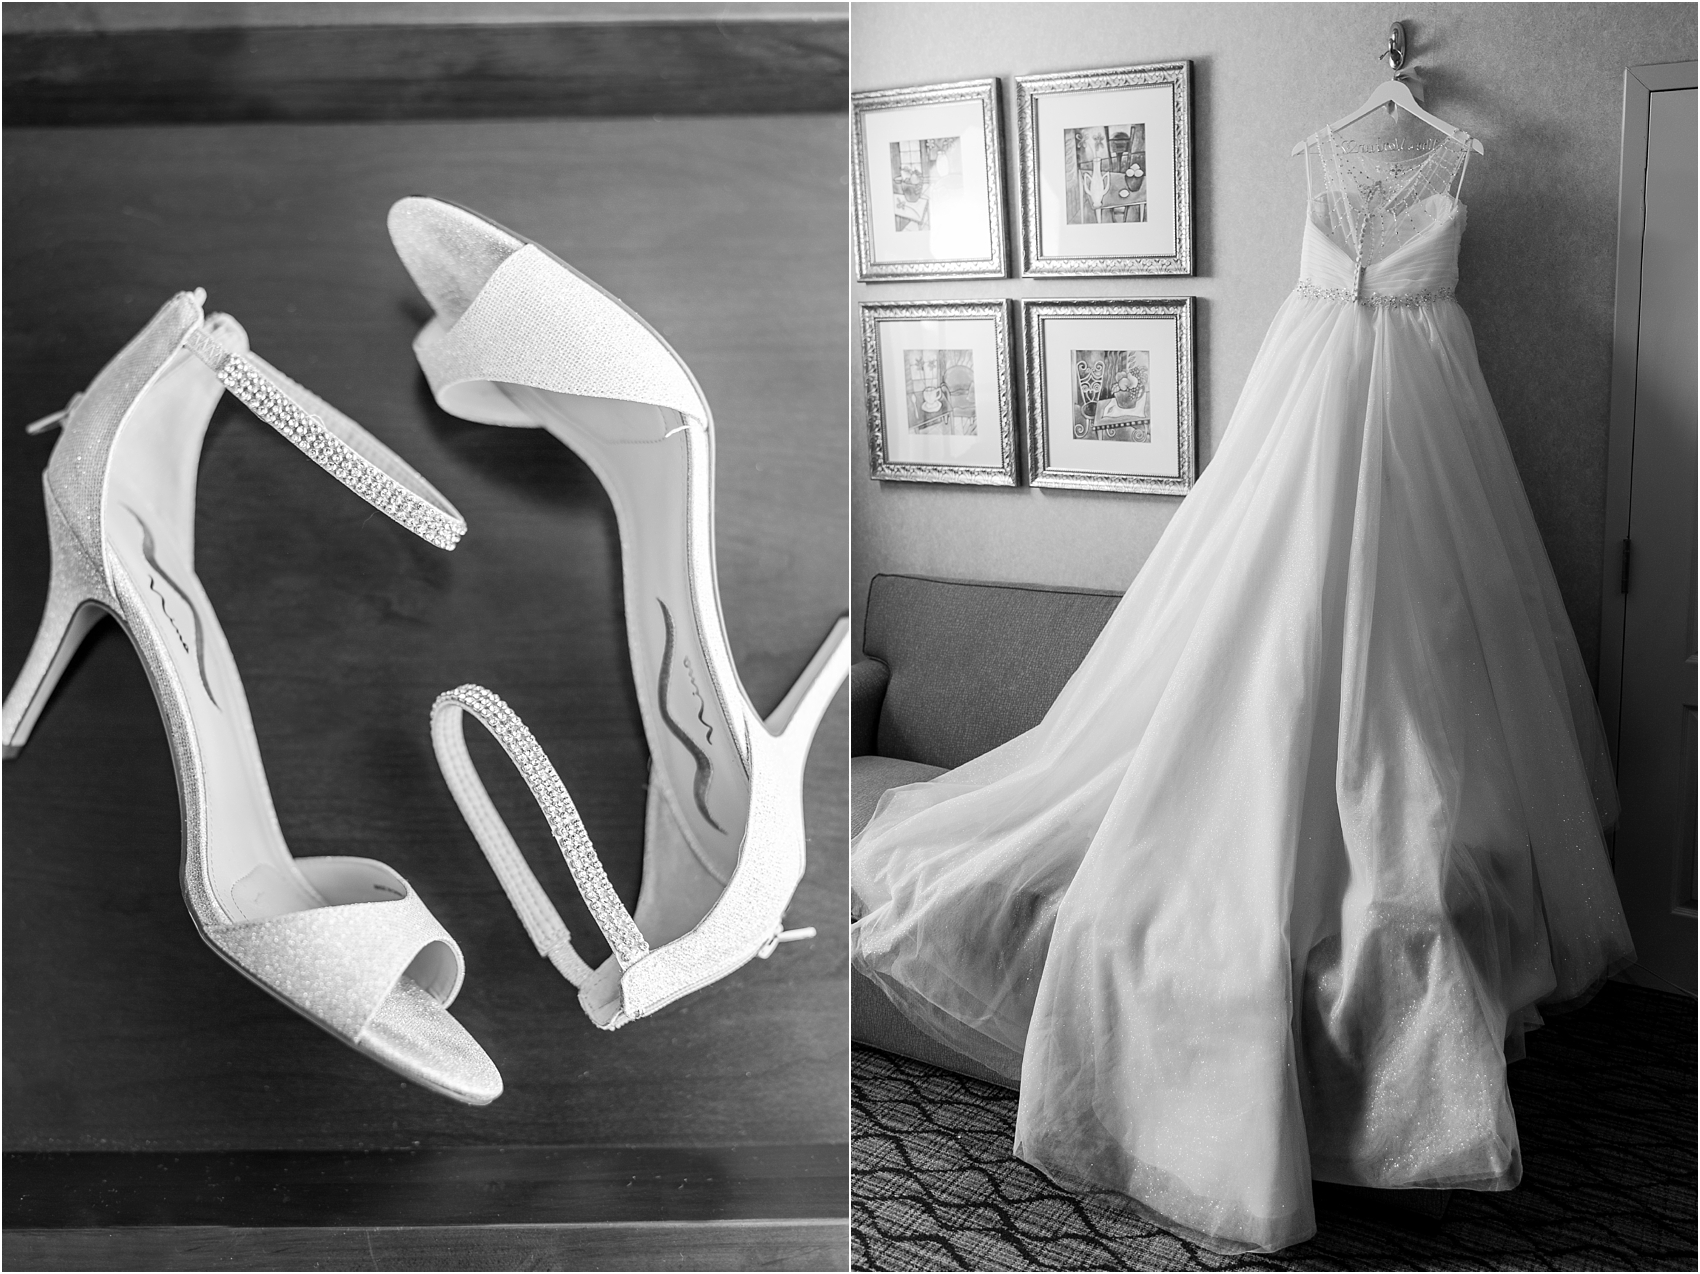 lord-of-the-rings-inspired-wedding-photos-at-crystal-gardens-in-howell-mi-by-courtney-carolyn-photography_0004.jpg